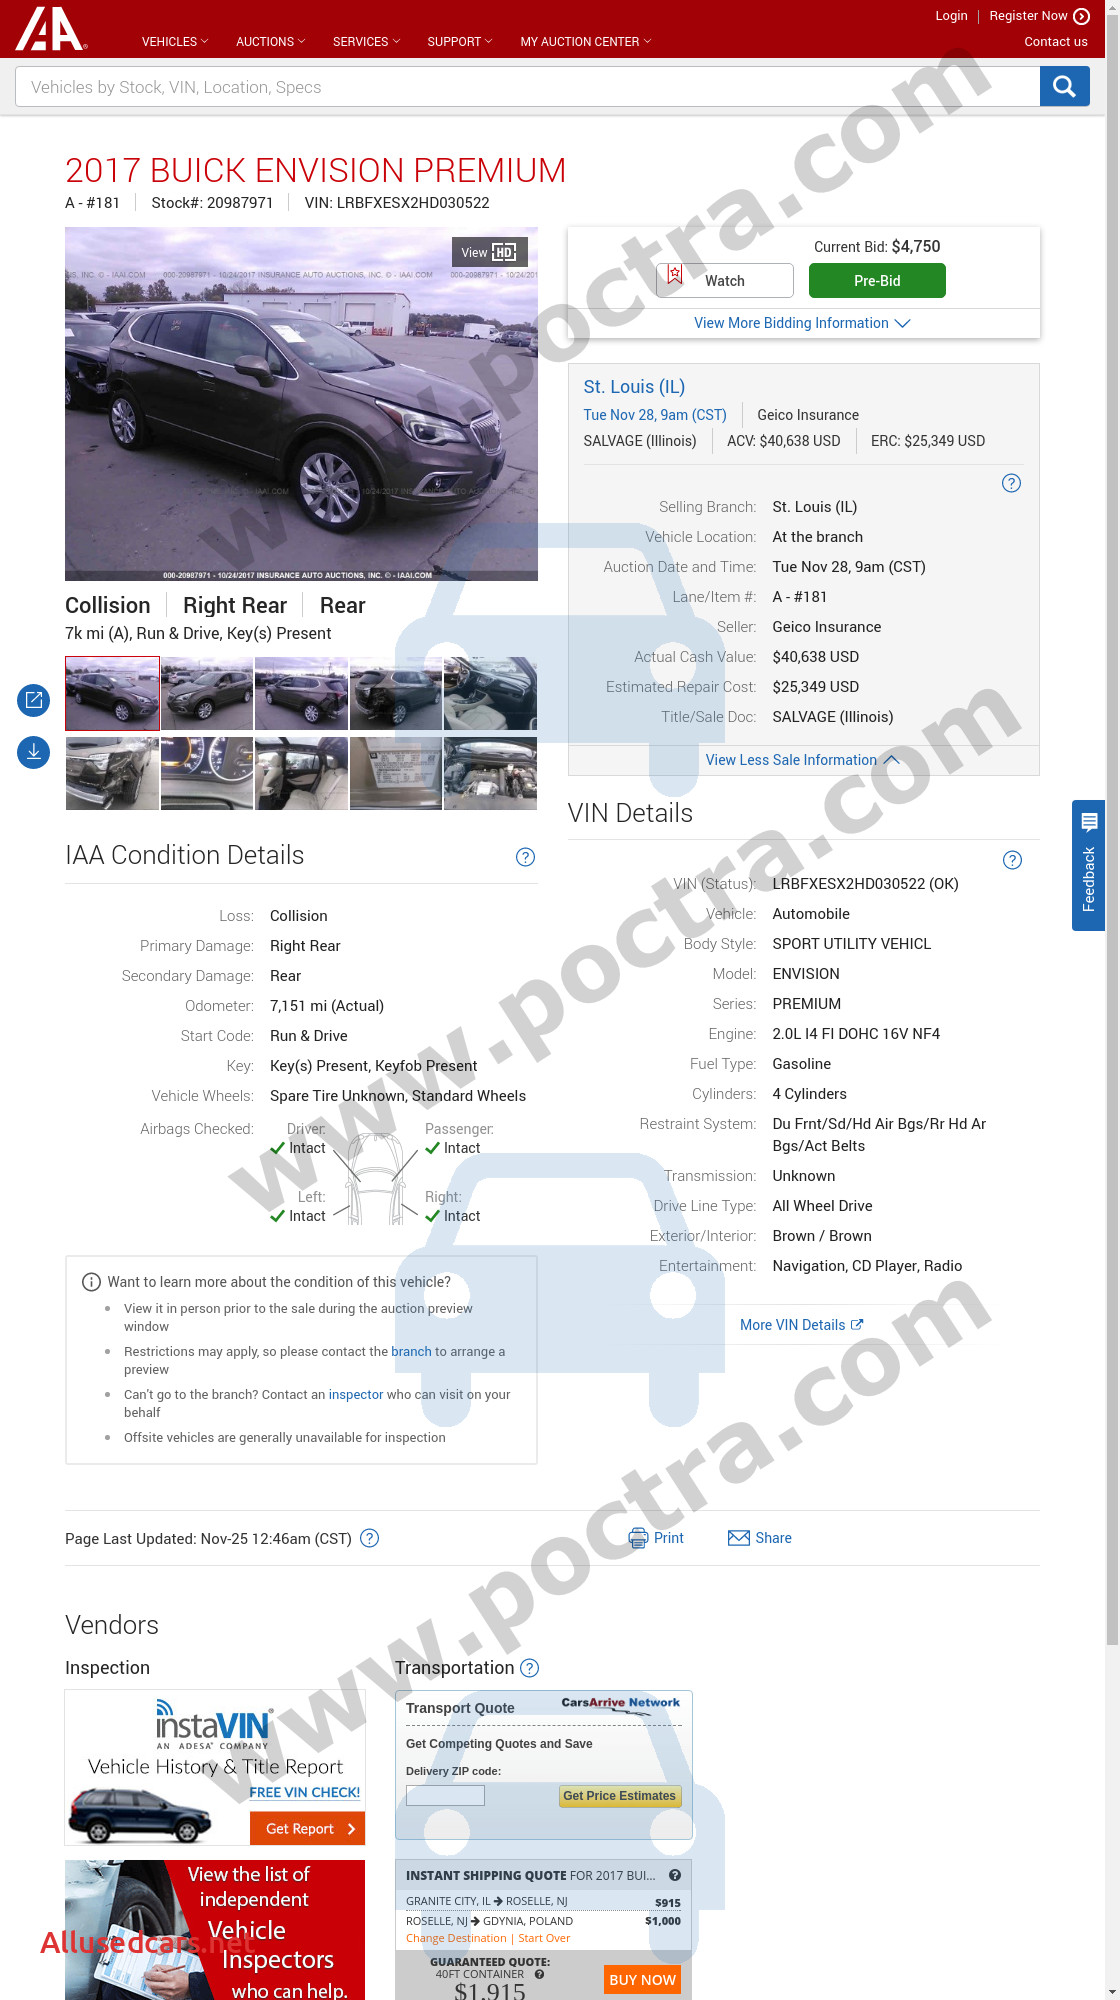 2017 Buick Enclave Lovely Lrbfxesx2hd 2017 Buick Envision Premium Poctra